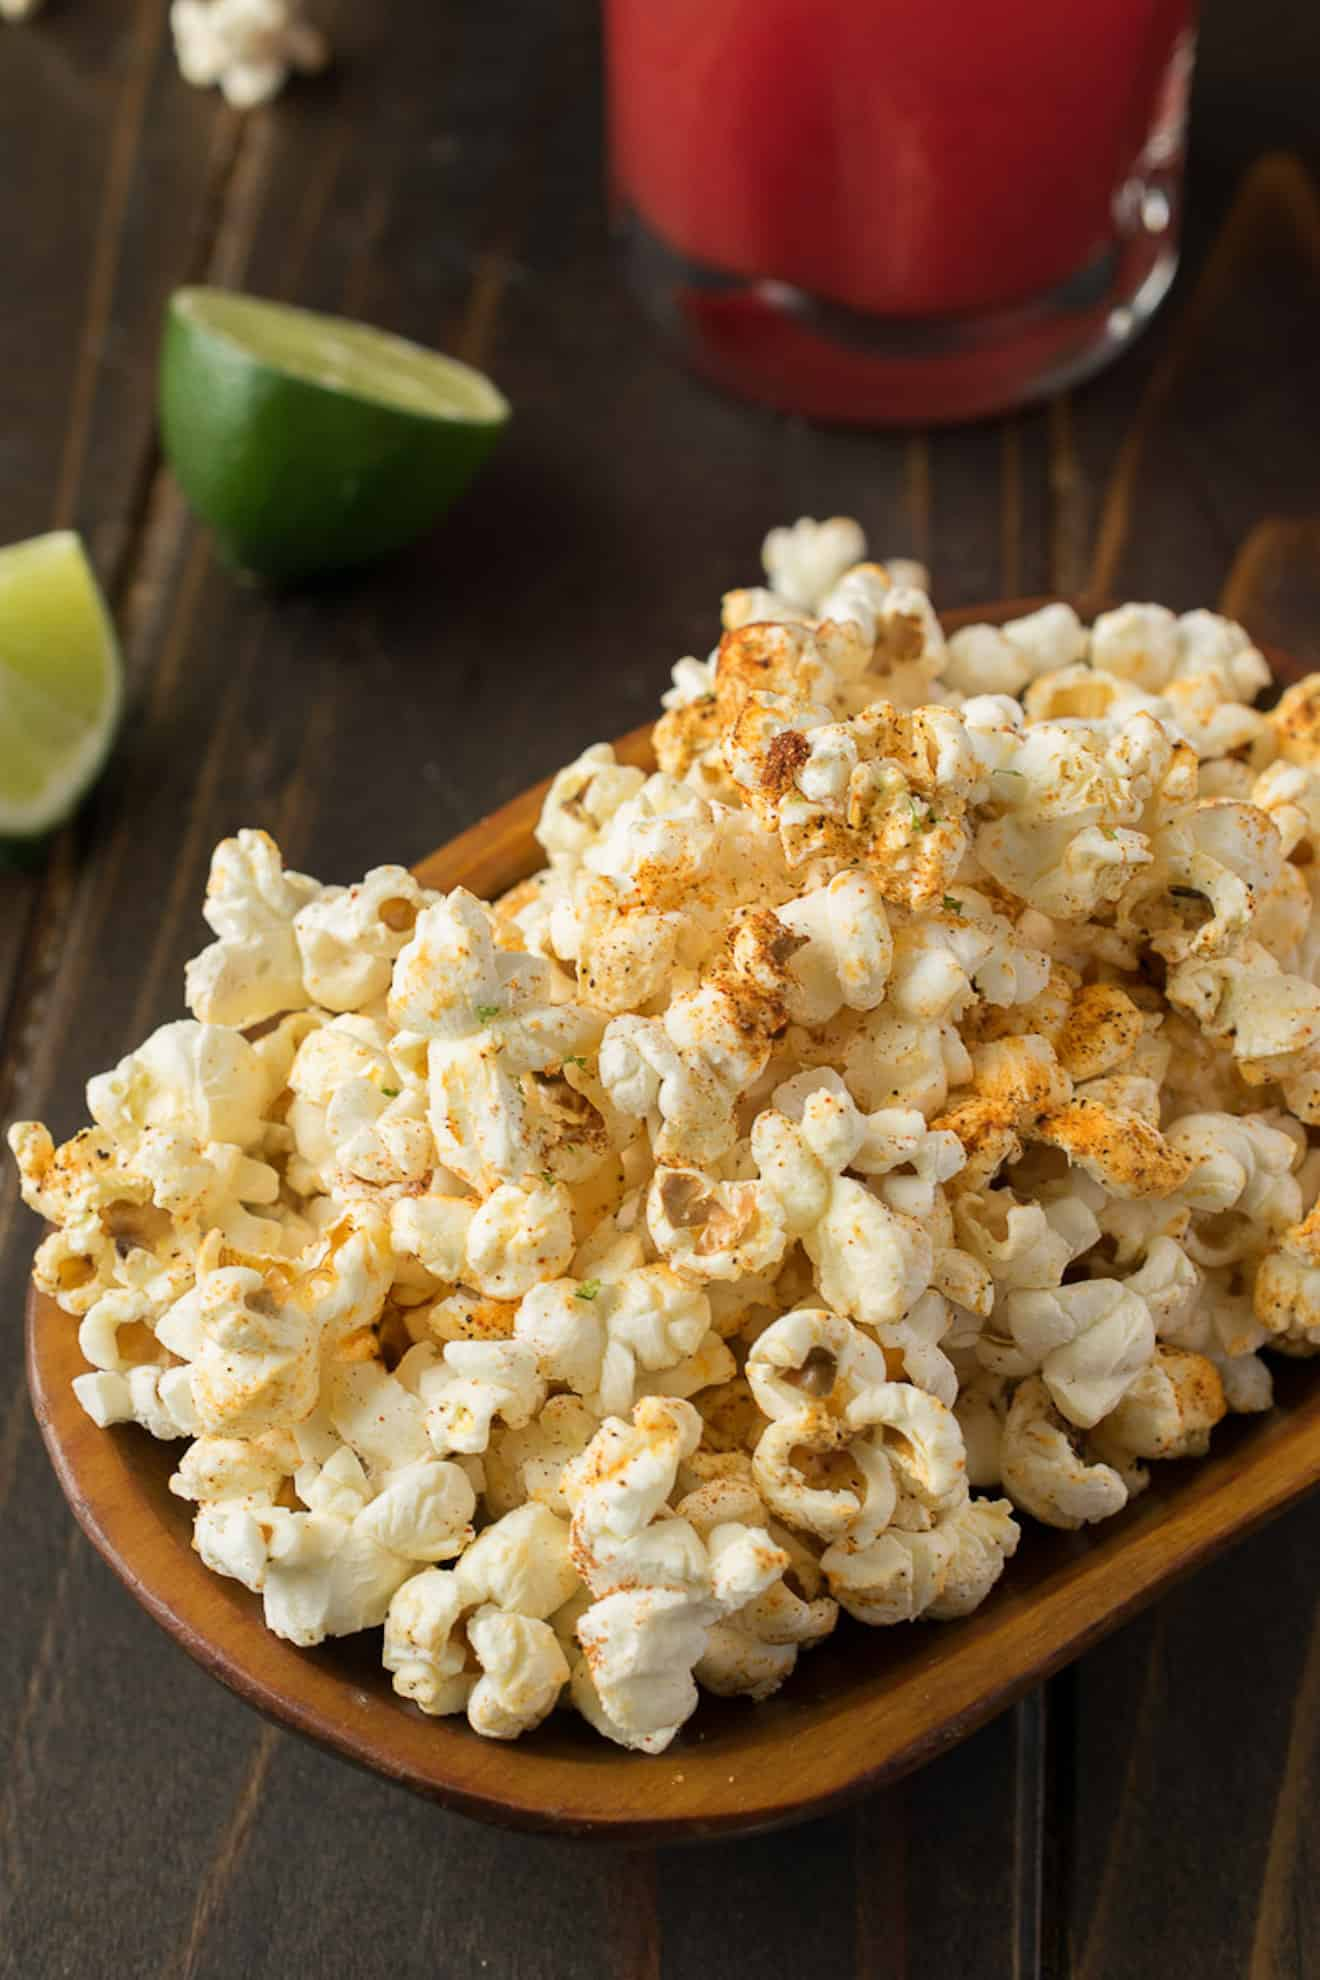 Mexican popcorn garnished with lime zest in a bowl